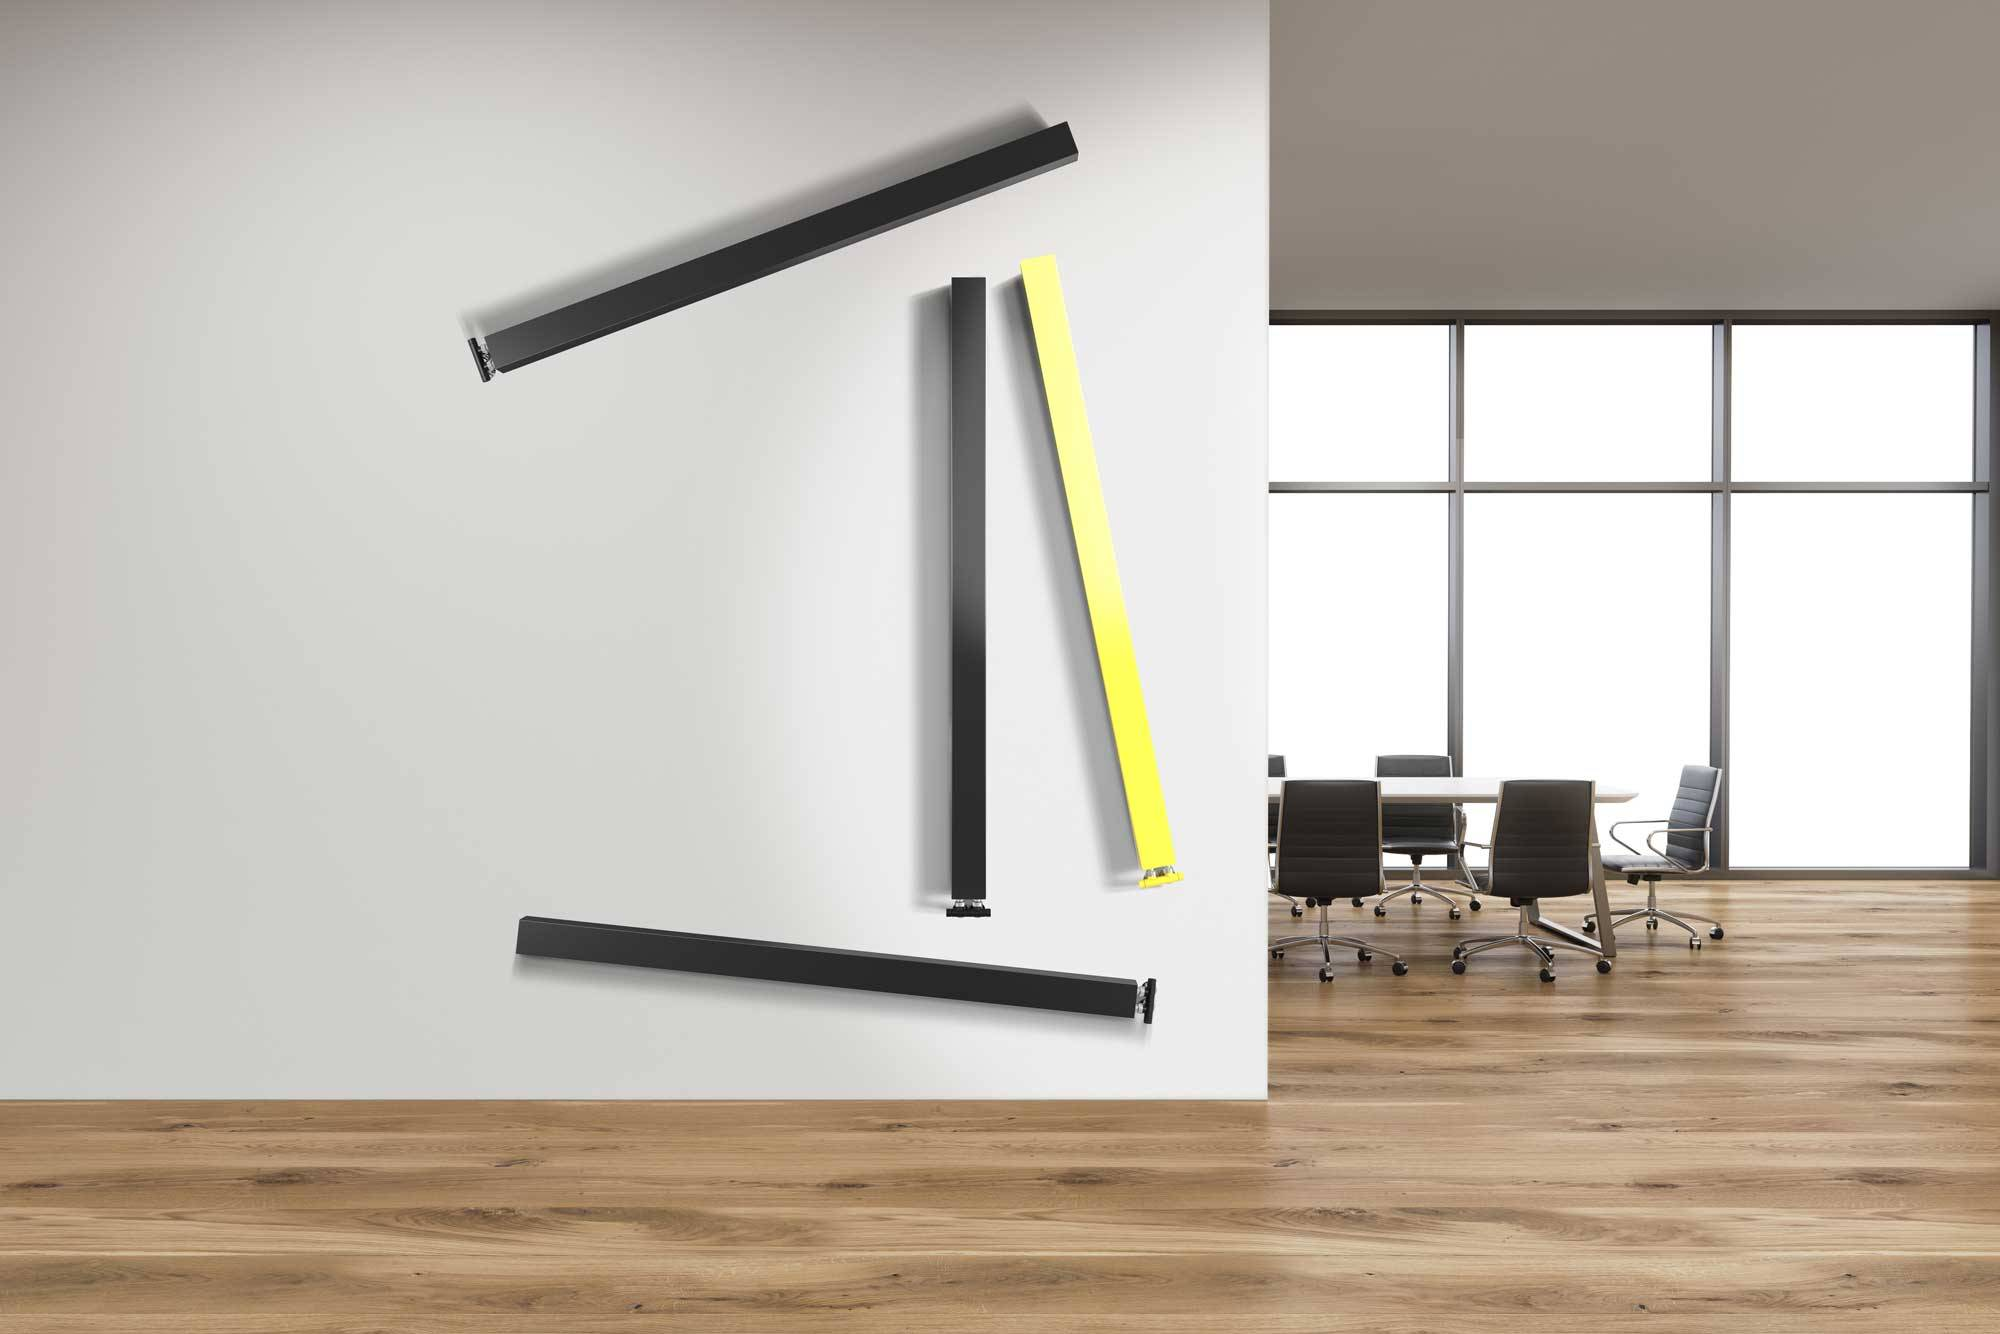 Termoarredo lazzarini ONETUBE_anthracite-and-yellow